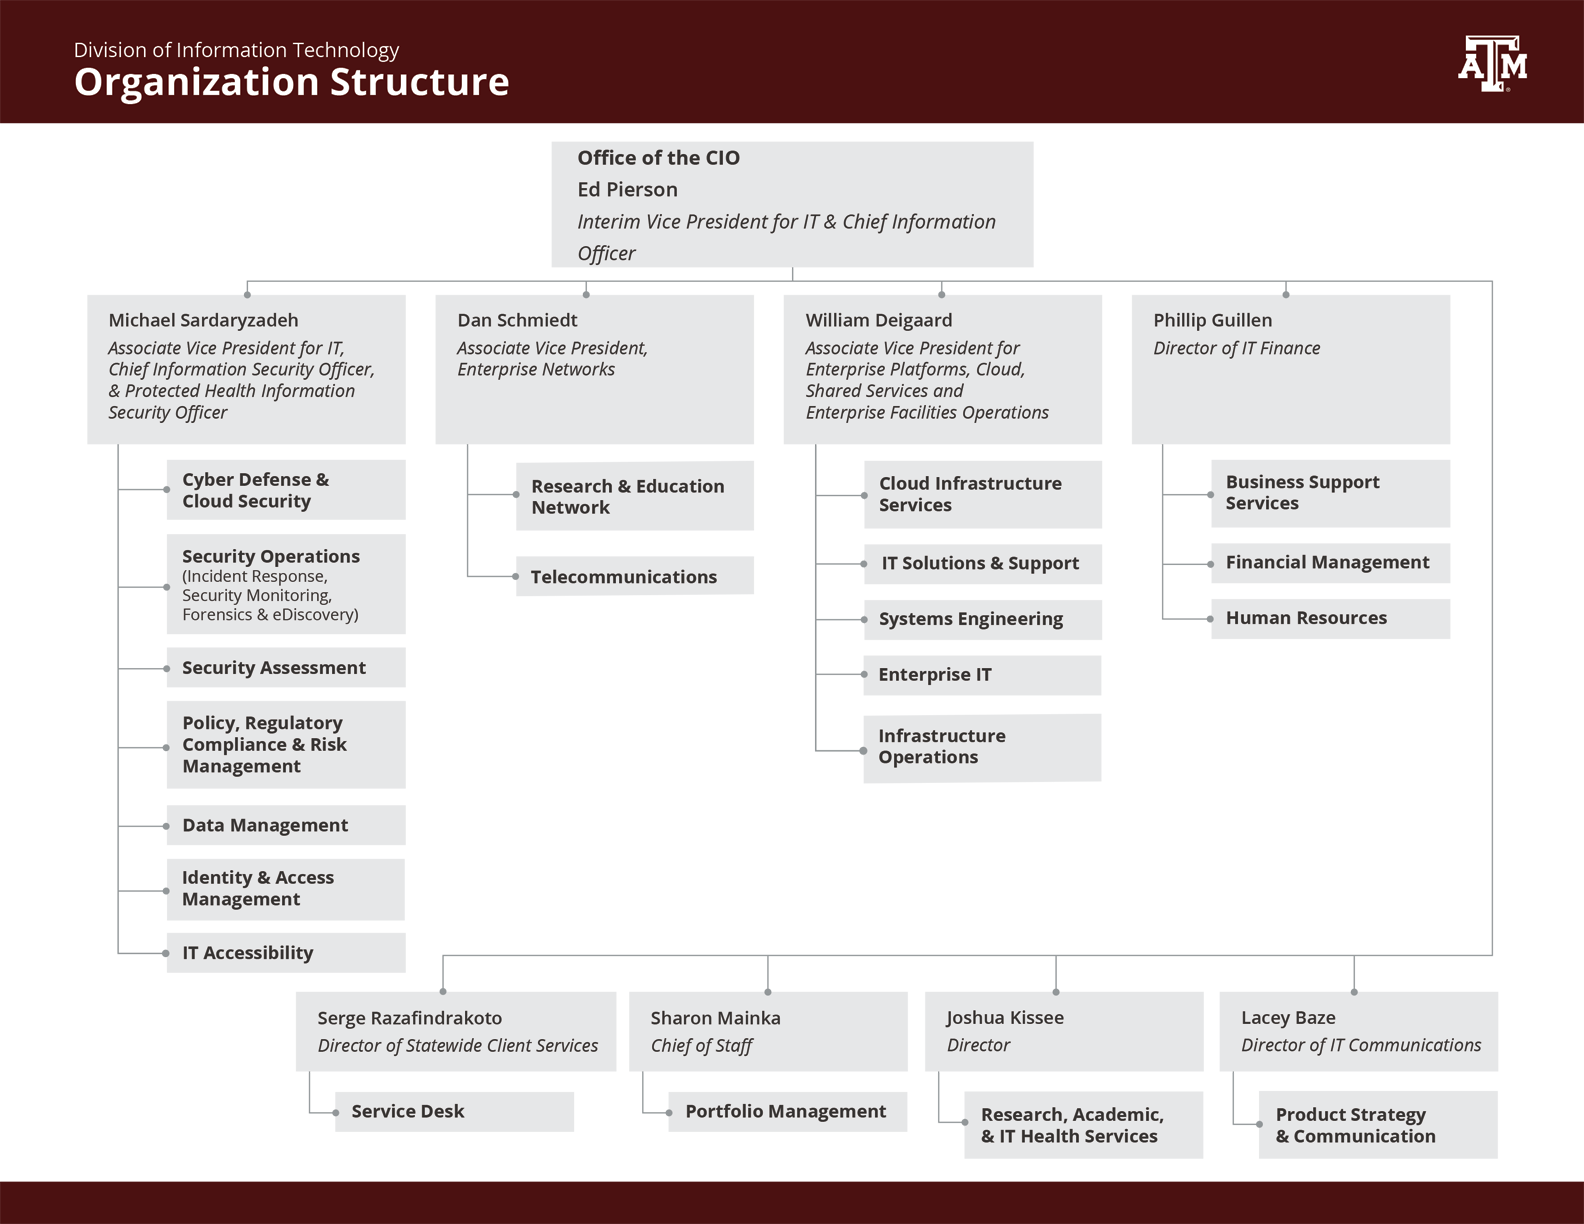 Overview of the Division of IT organization structure.